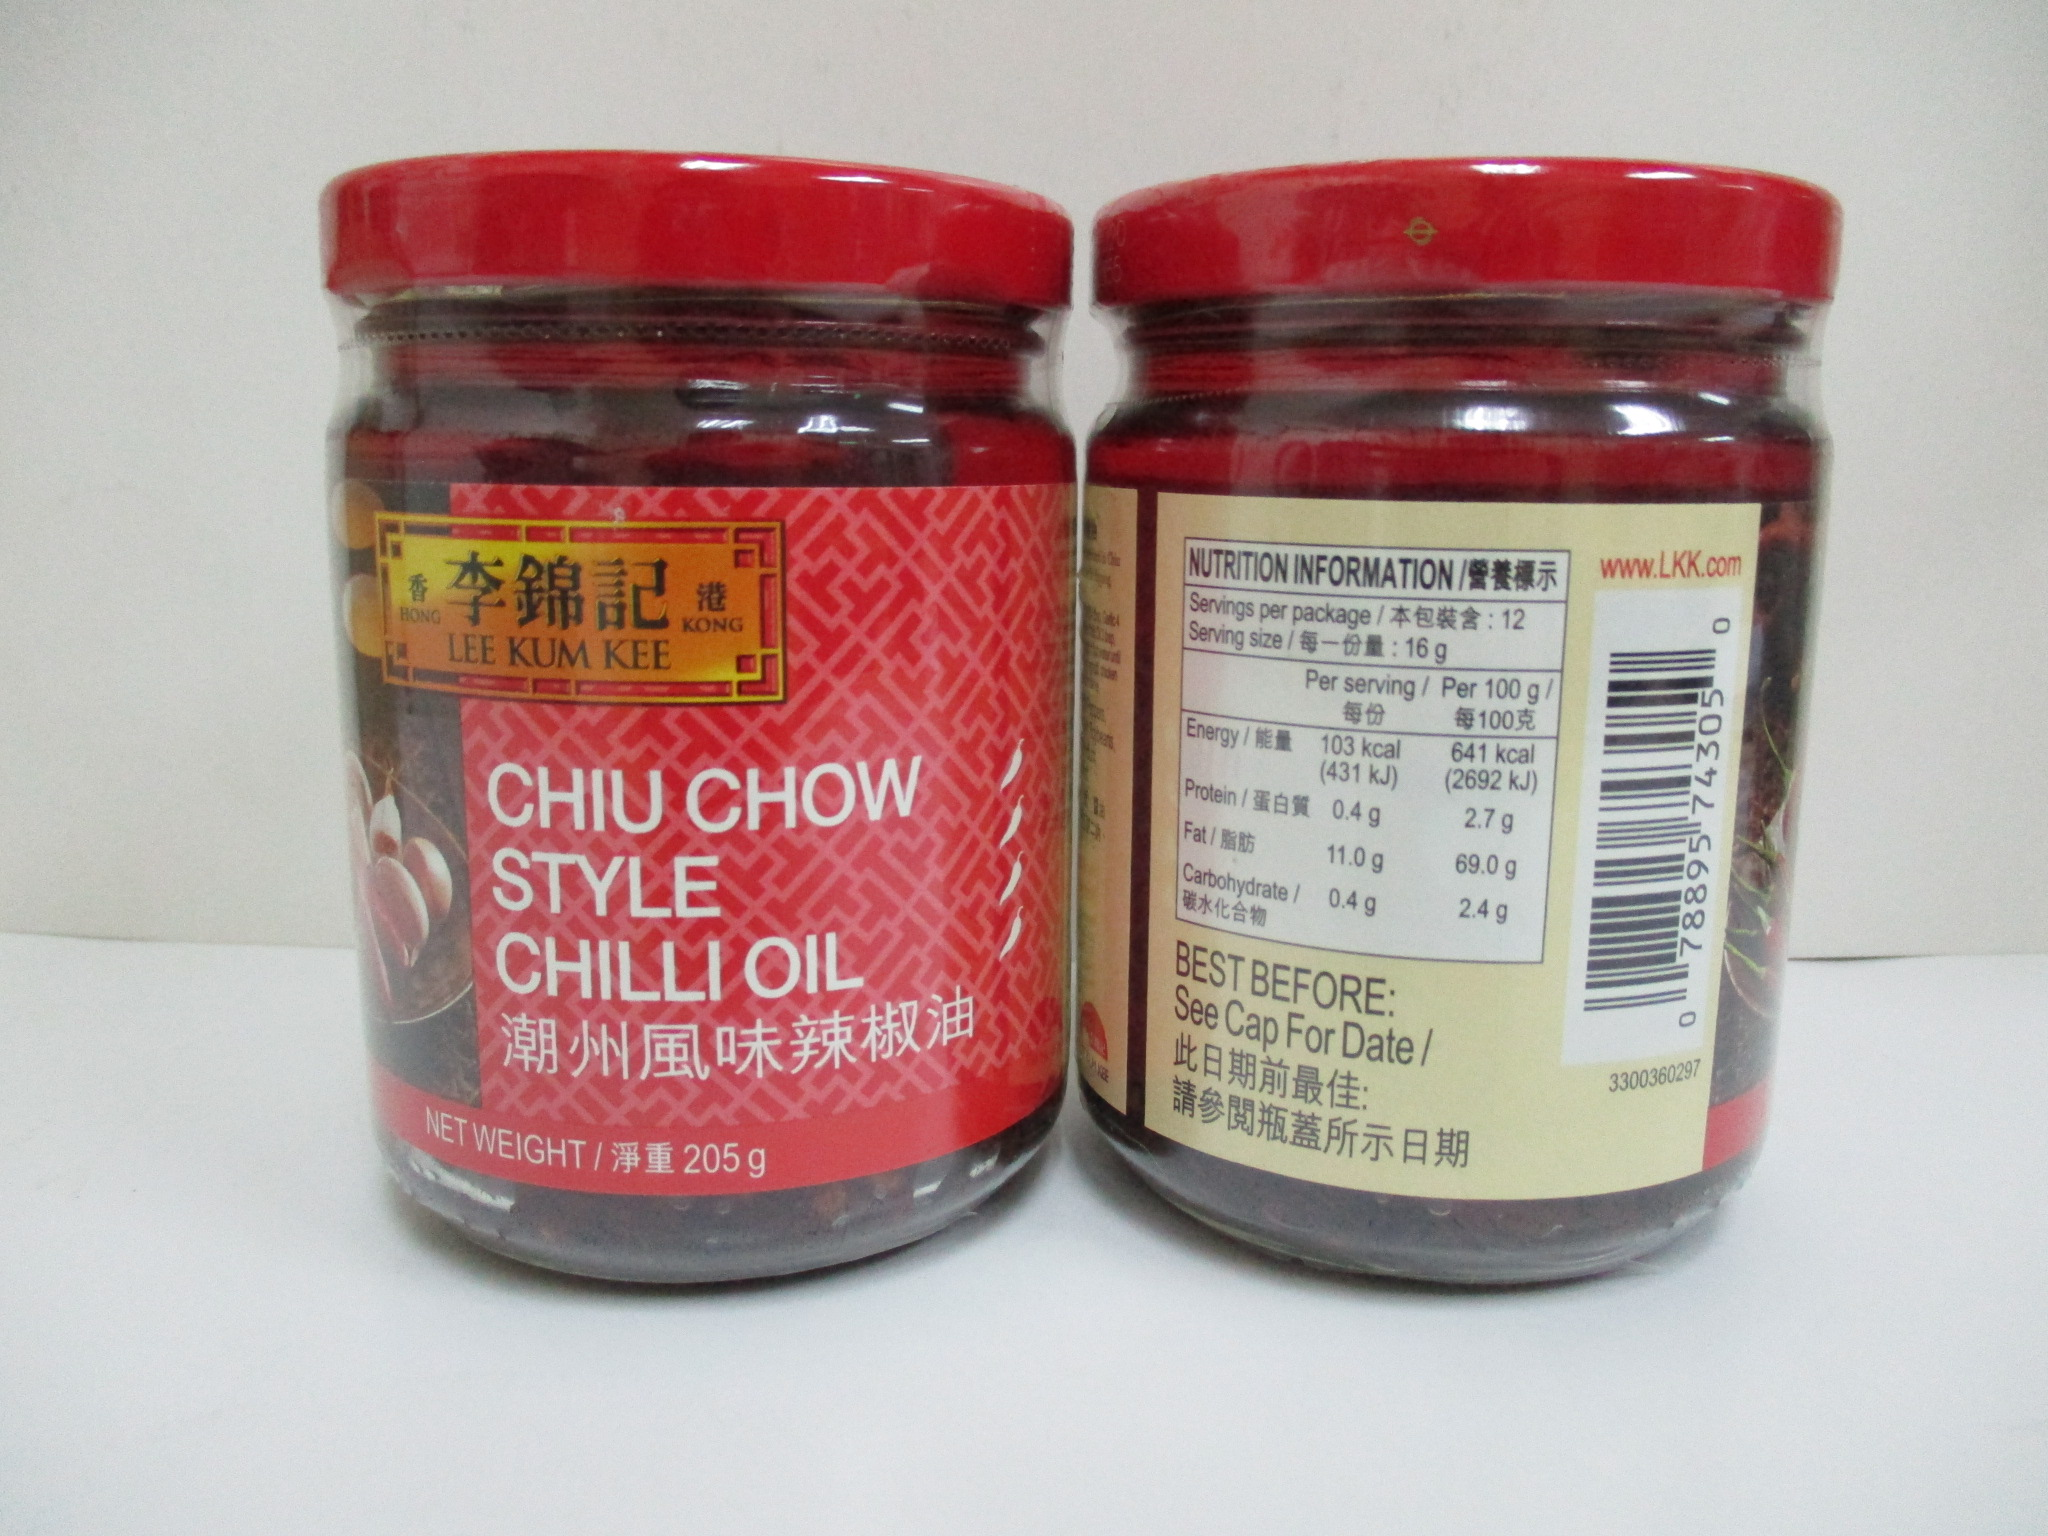 LKK Chiu Chow Chili Oil (12 x 205g) NEW.